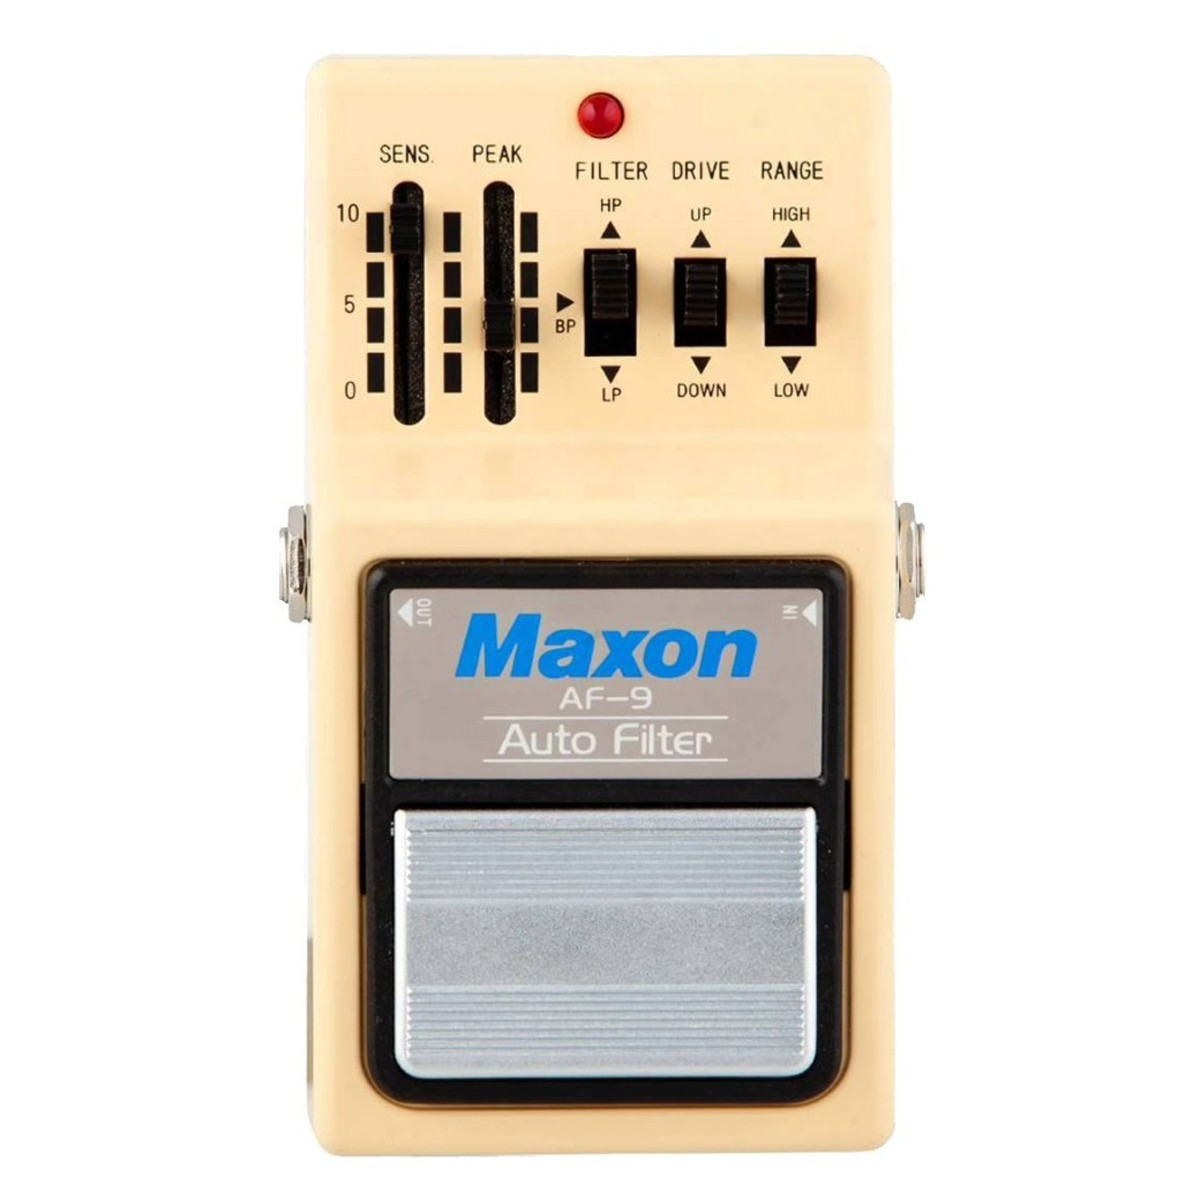 Maxon Af 9 Auto Filter Pedal At Gear4music Marshall Input Jack Wiring Af9 Loading Zoom